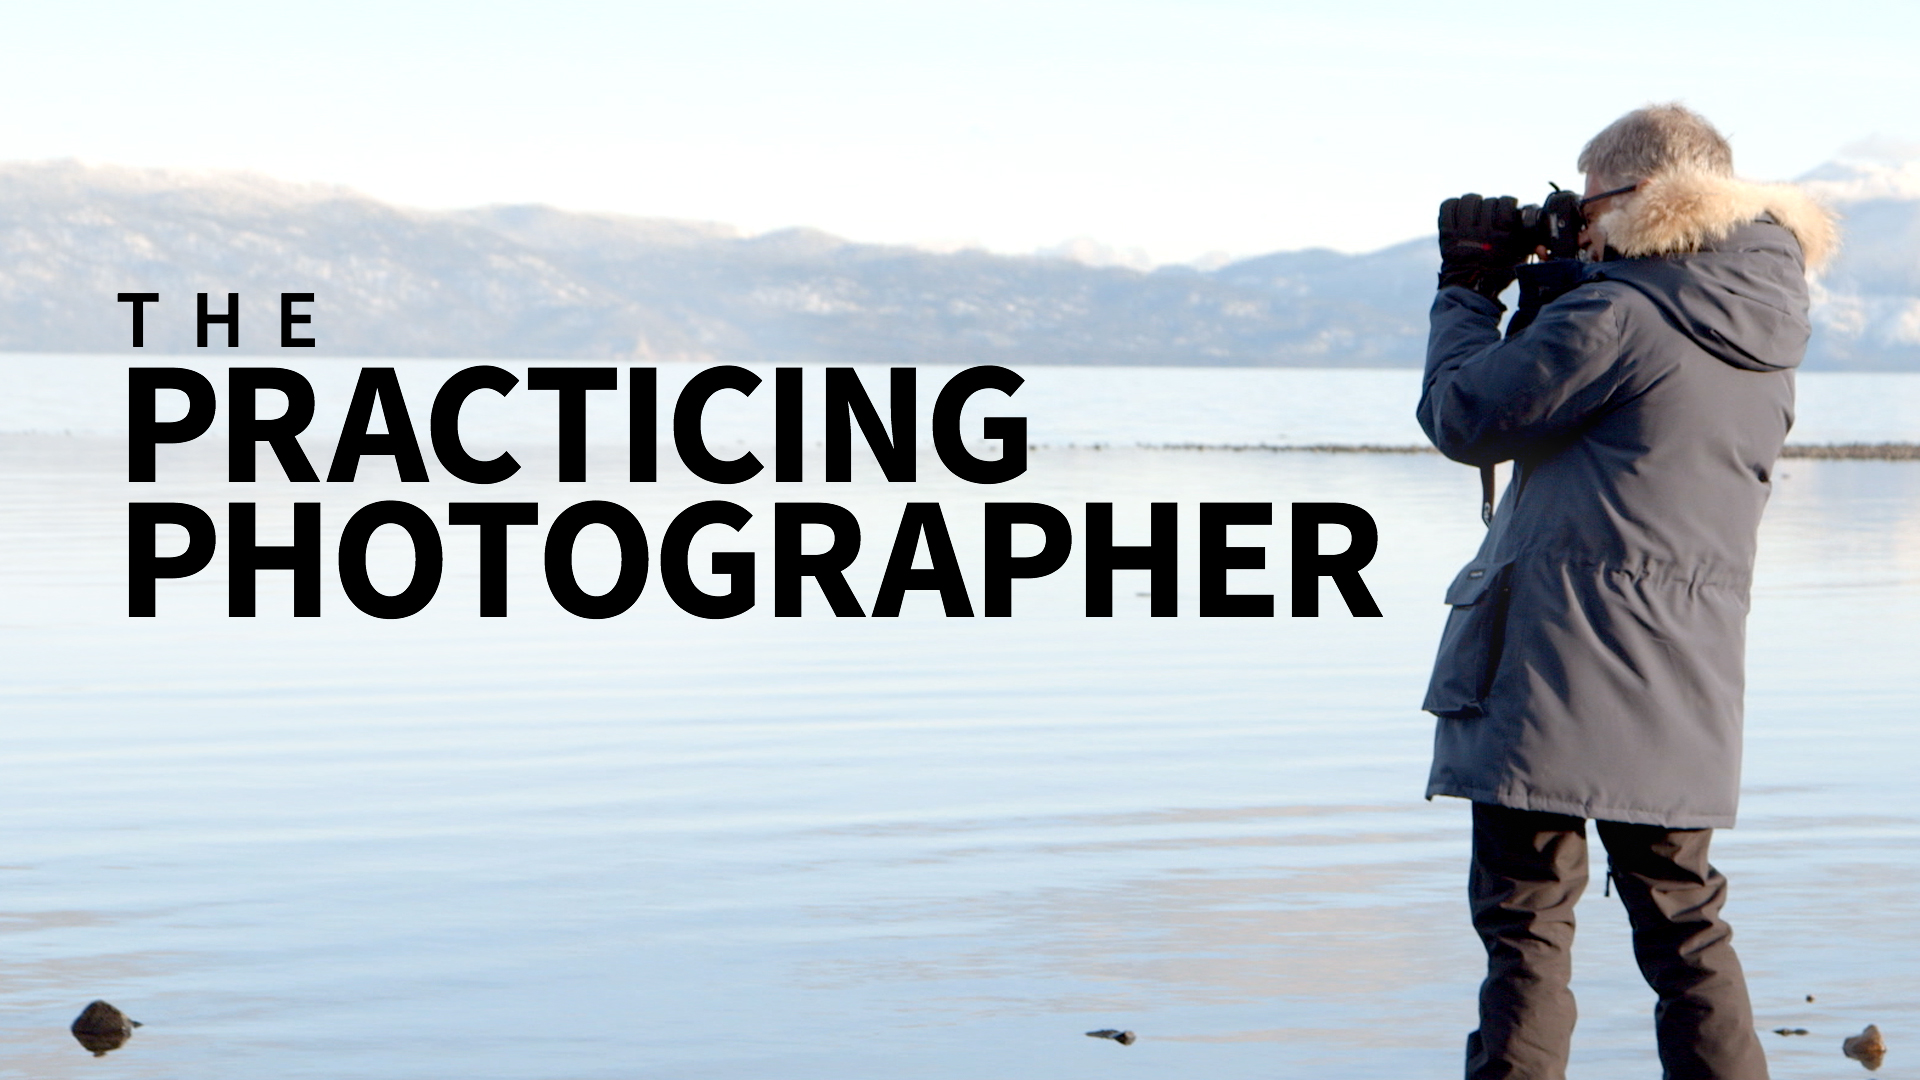 Seeing what you don't see: The Practicing Photographer